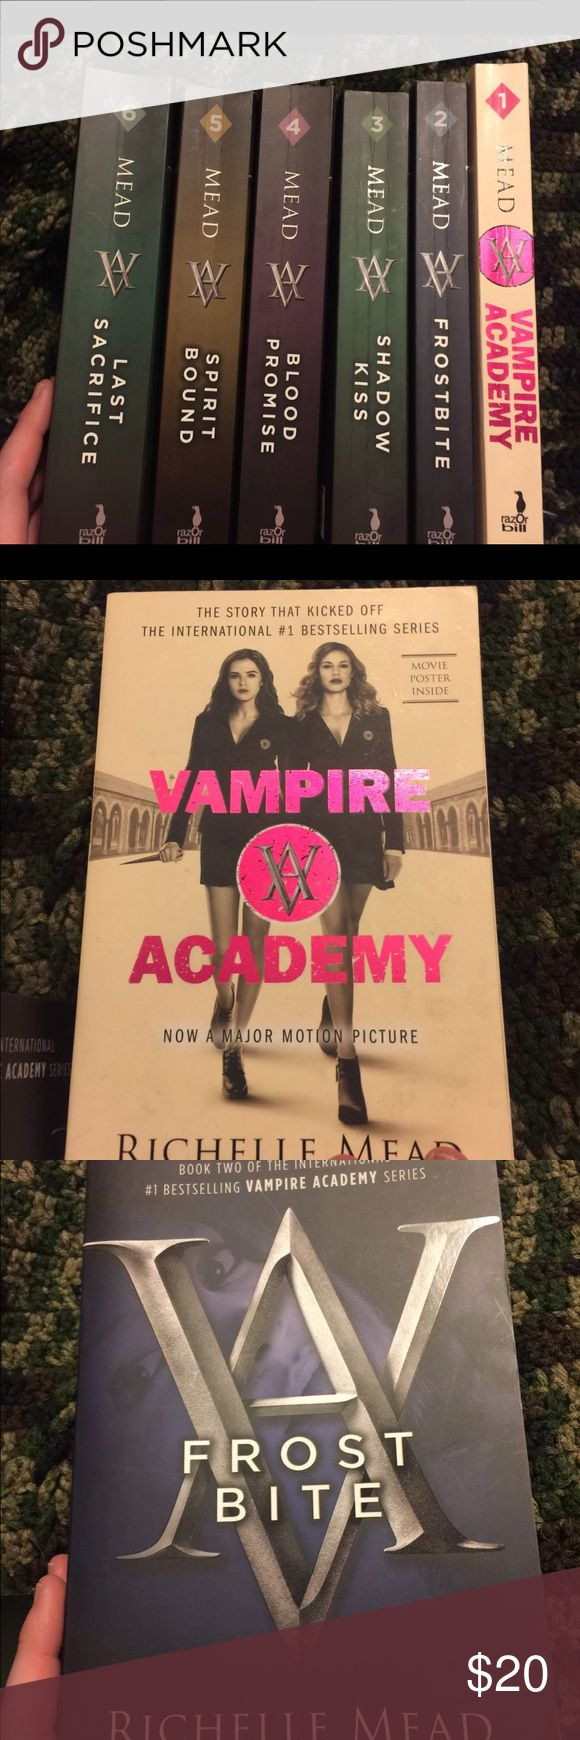 Vampire Academy box set( box no longer with it) Books in good condition, a little wear on spine due to opening the books but pages good condition looks like hardly read. Other